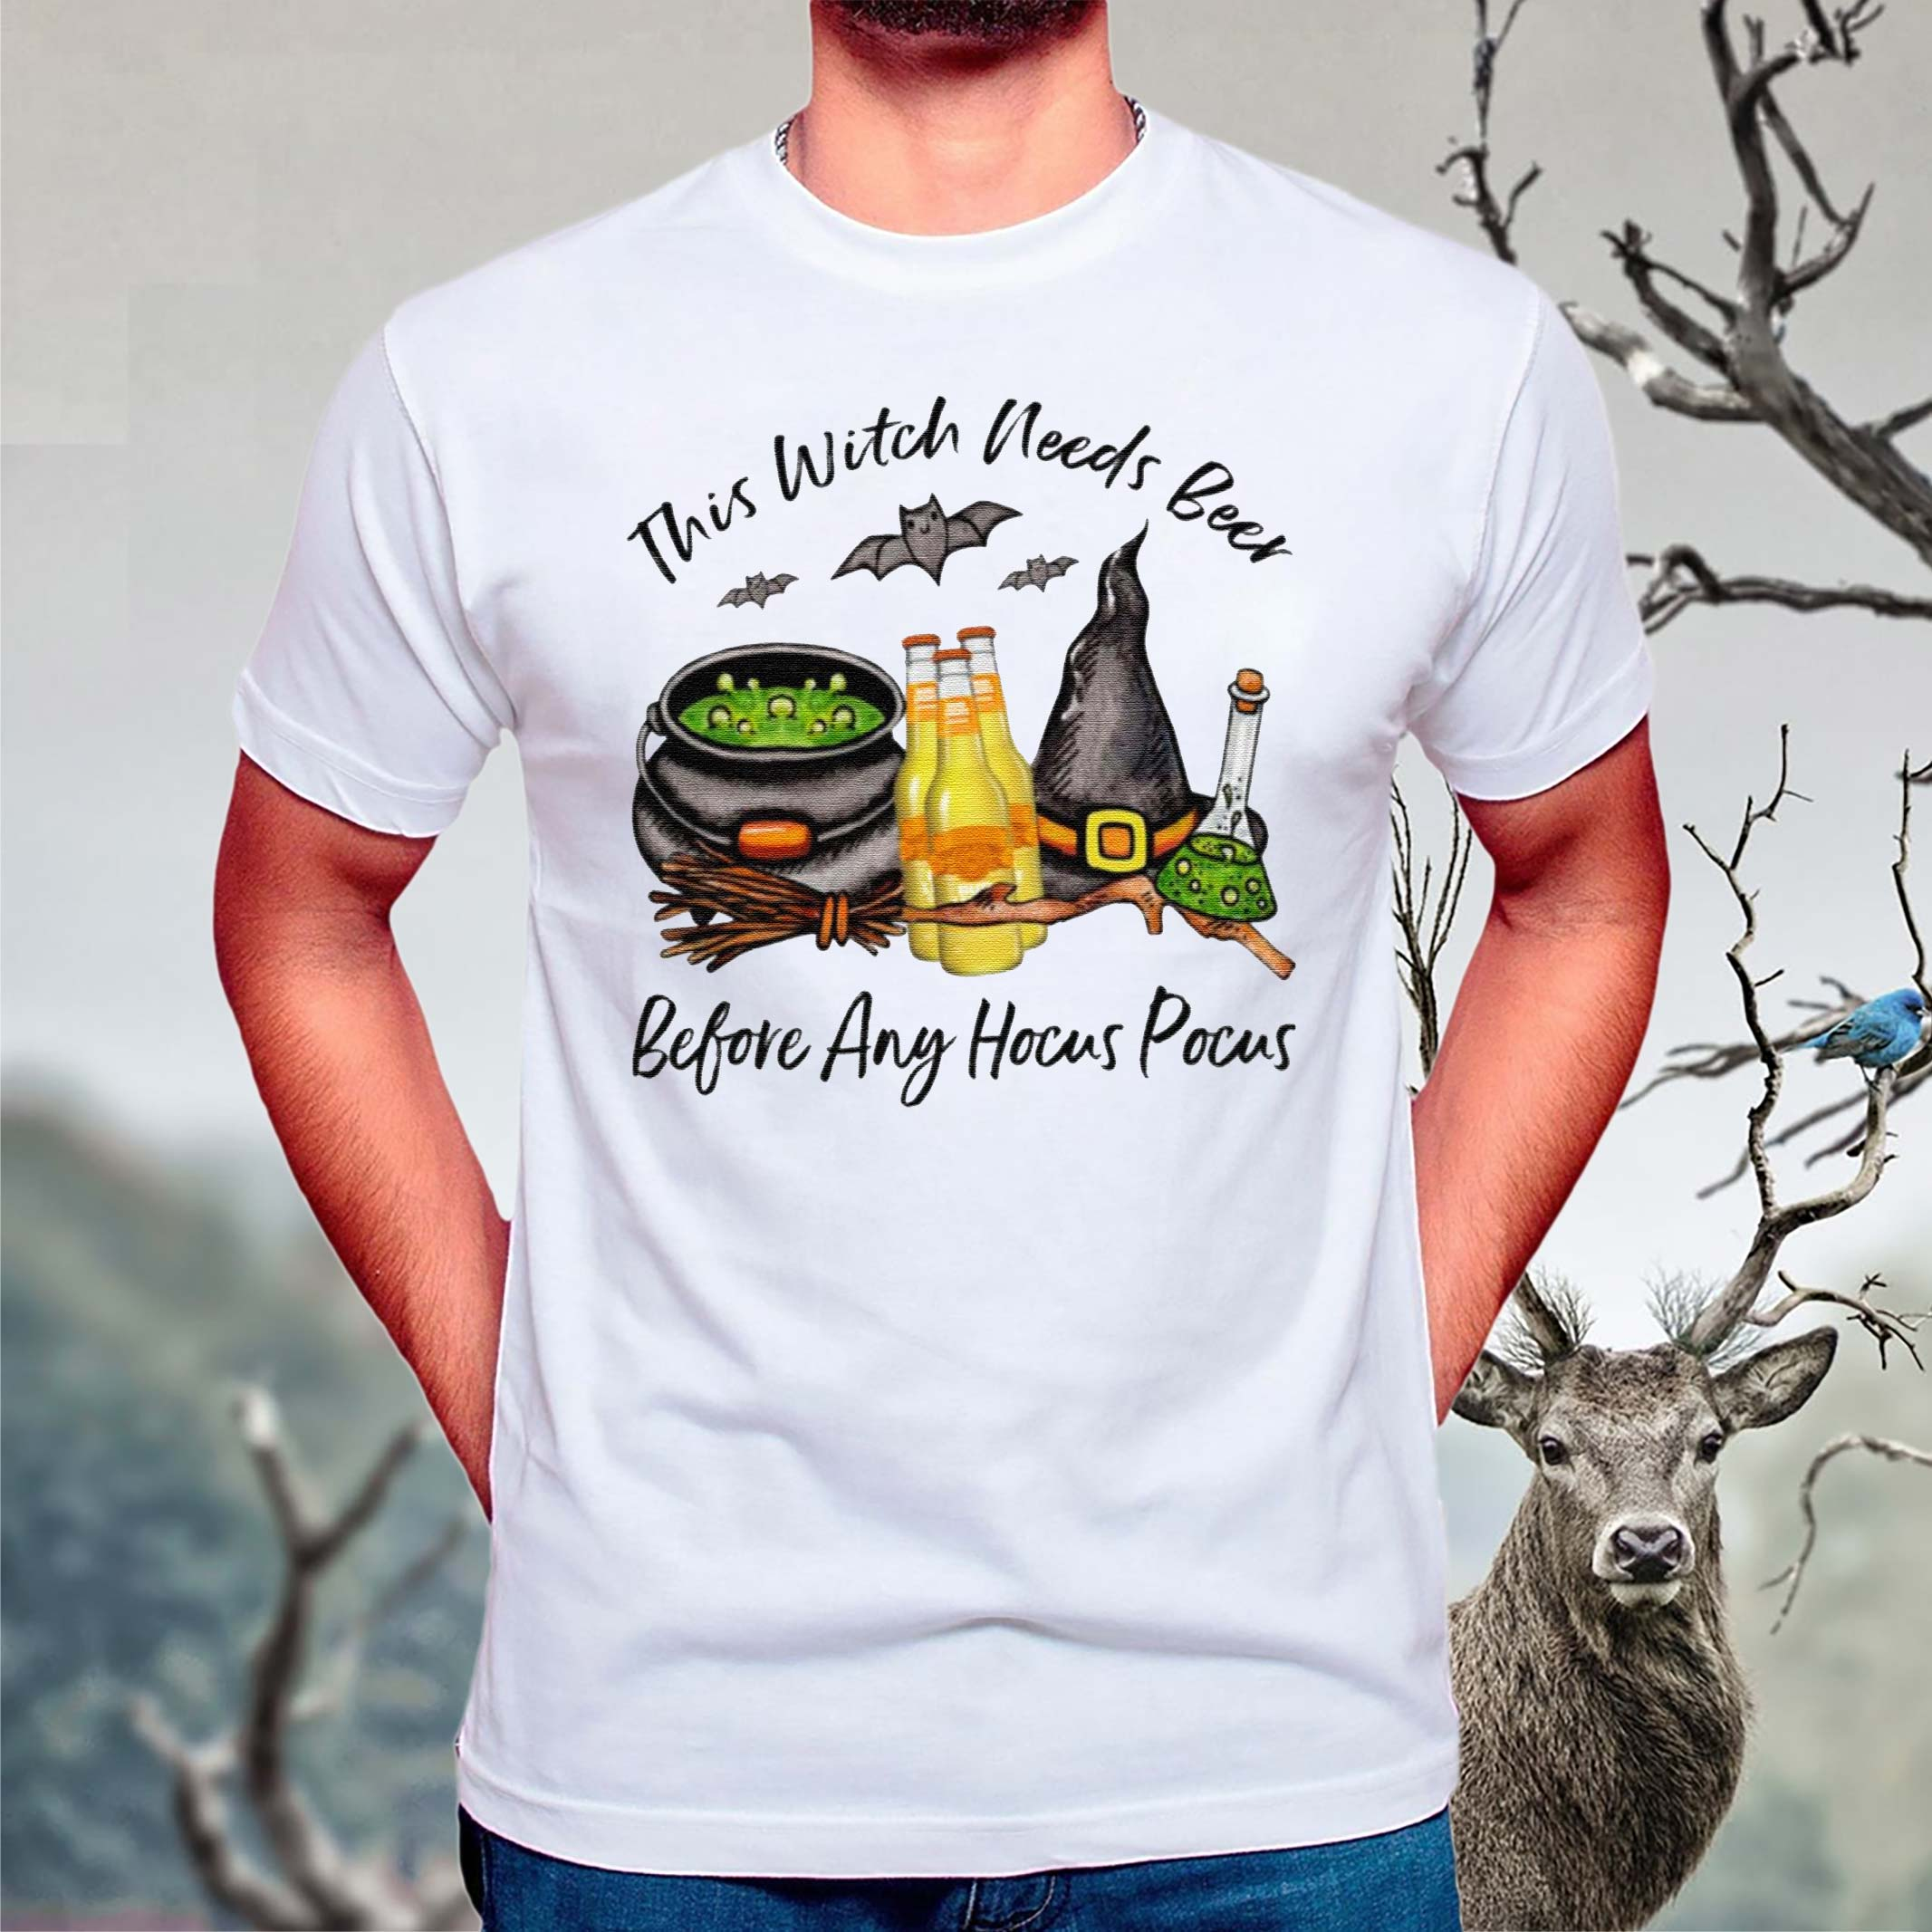 Bud-Light-Orange-Bottle-This-Witch-Needs-Beer-Before-Any-Hocus-Pocus-T-Shirts